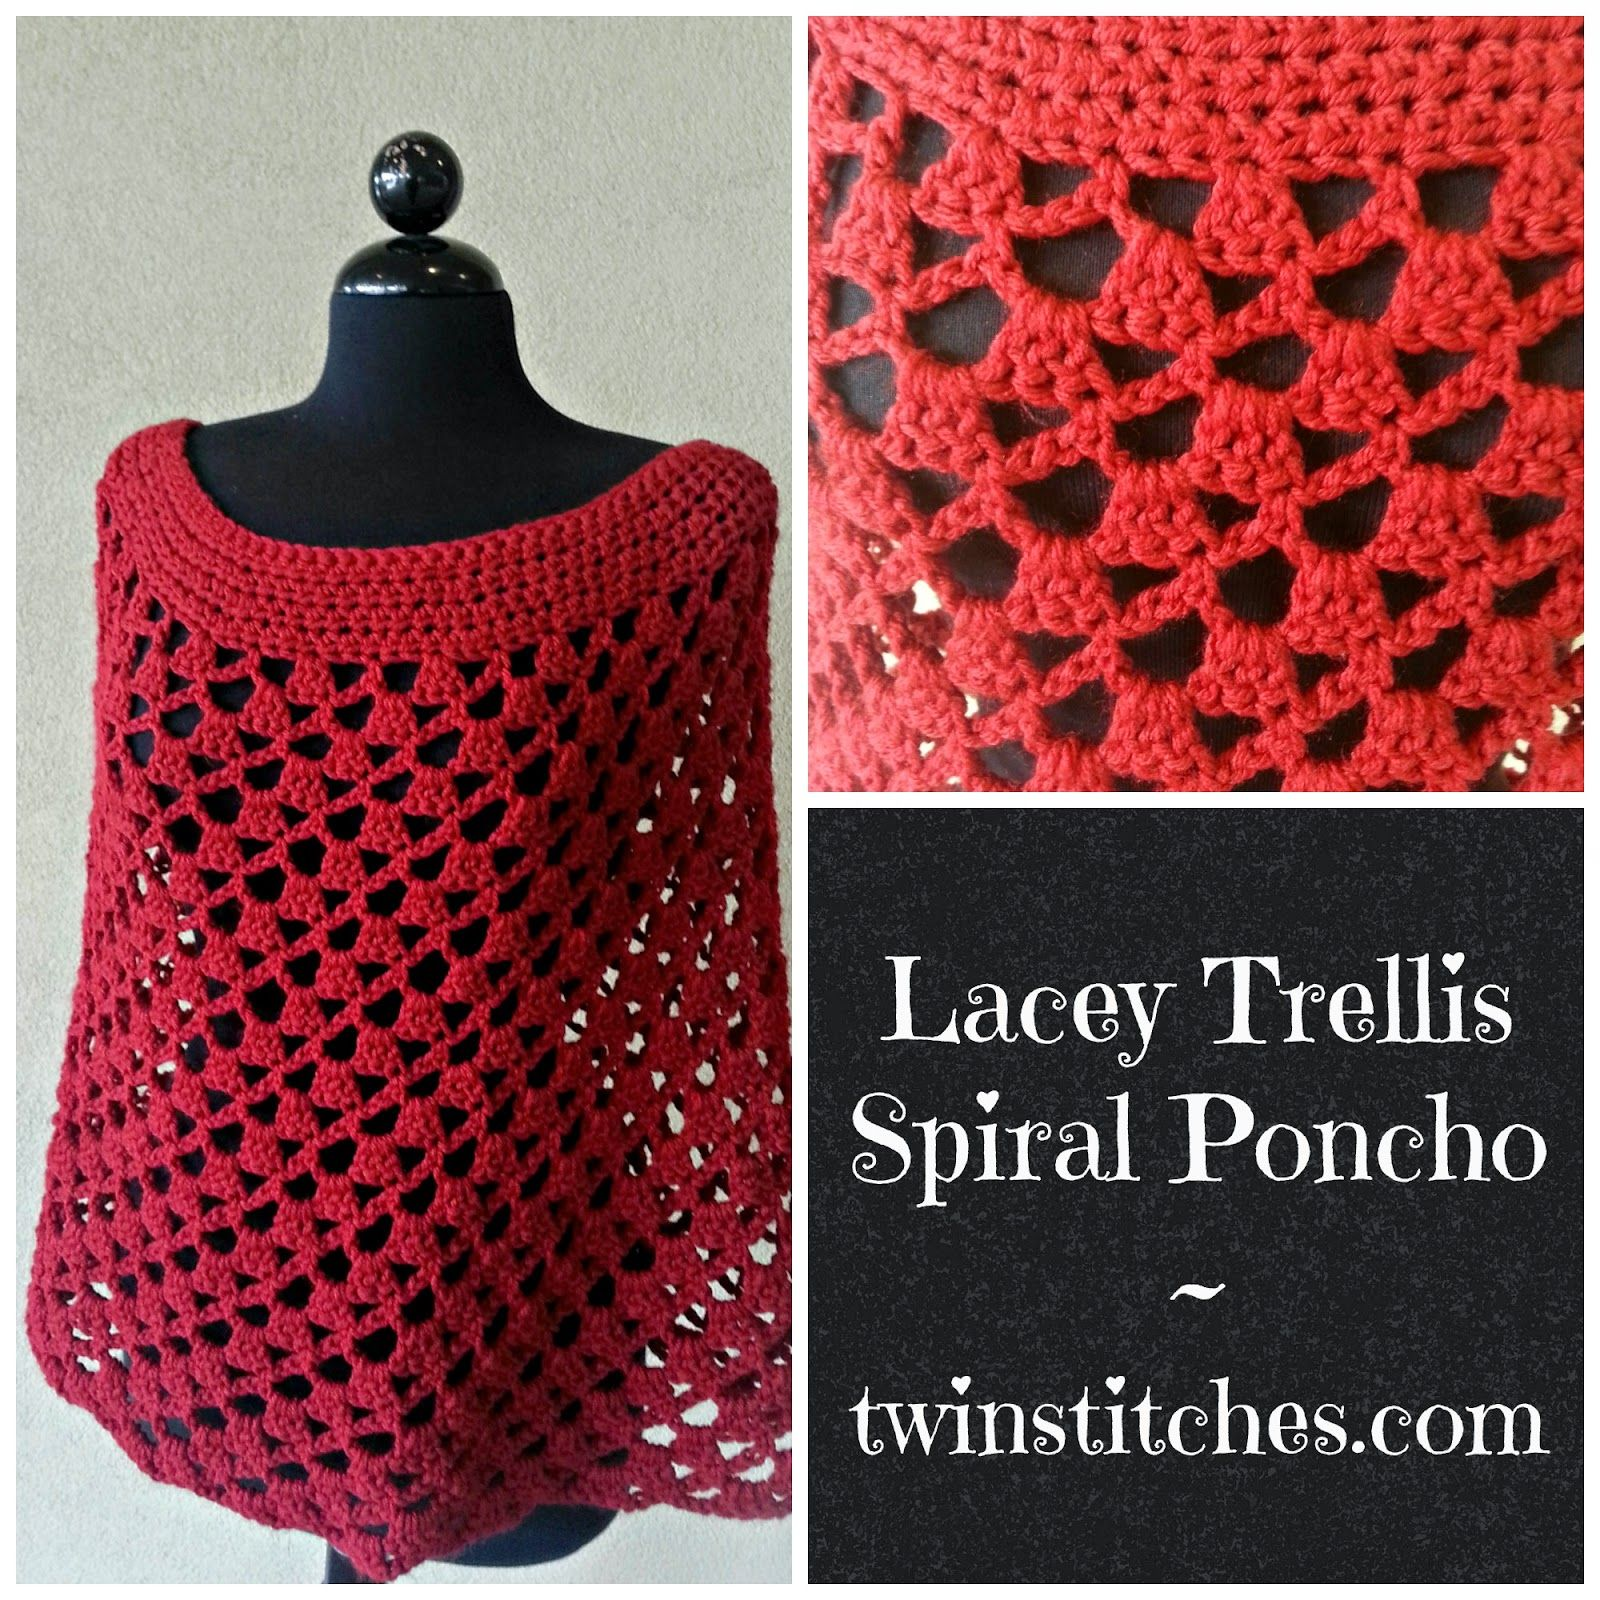 Lovely isnt it crochet diy tw in stitches lacey trellis tw in stitches lacey trellis poncho spiral version free crochet pattern in sizes l xl adjustable by jennifer uribe bankloansurffo Images